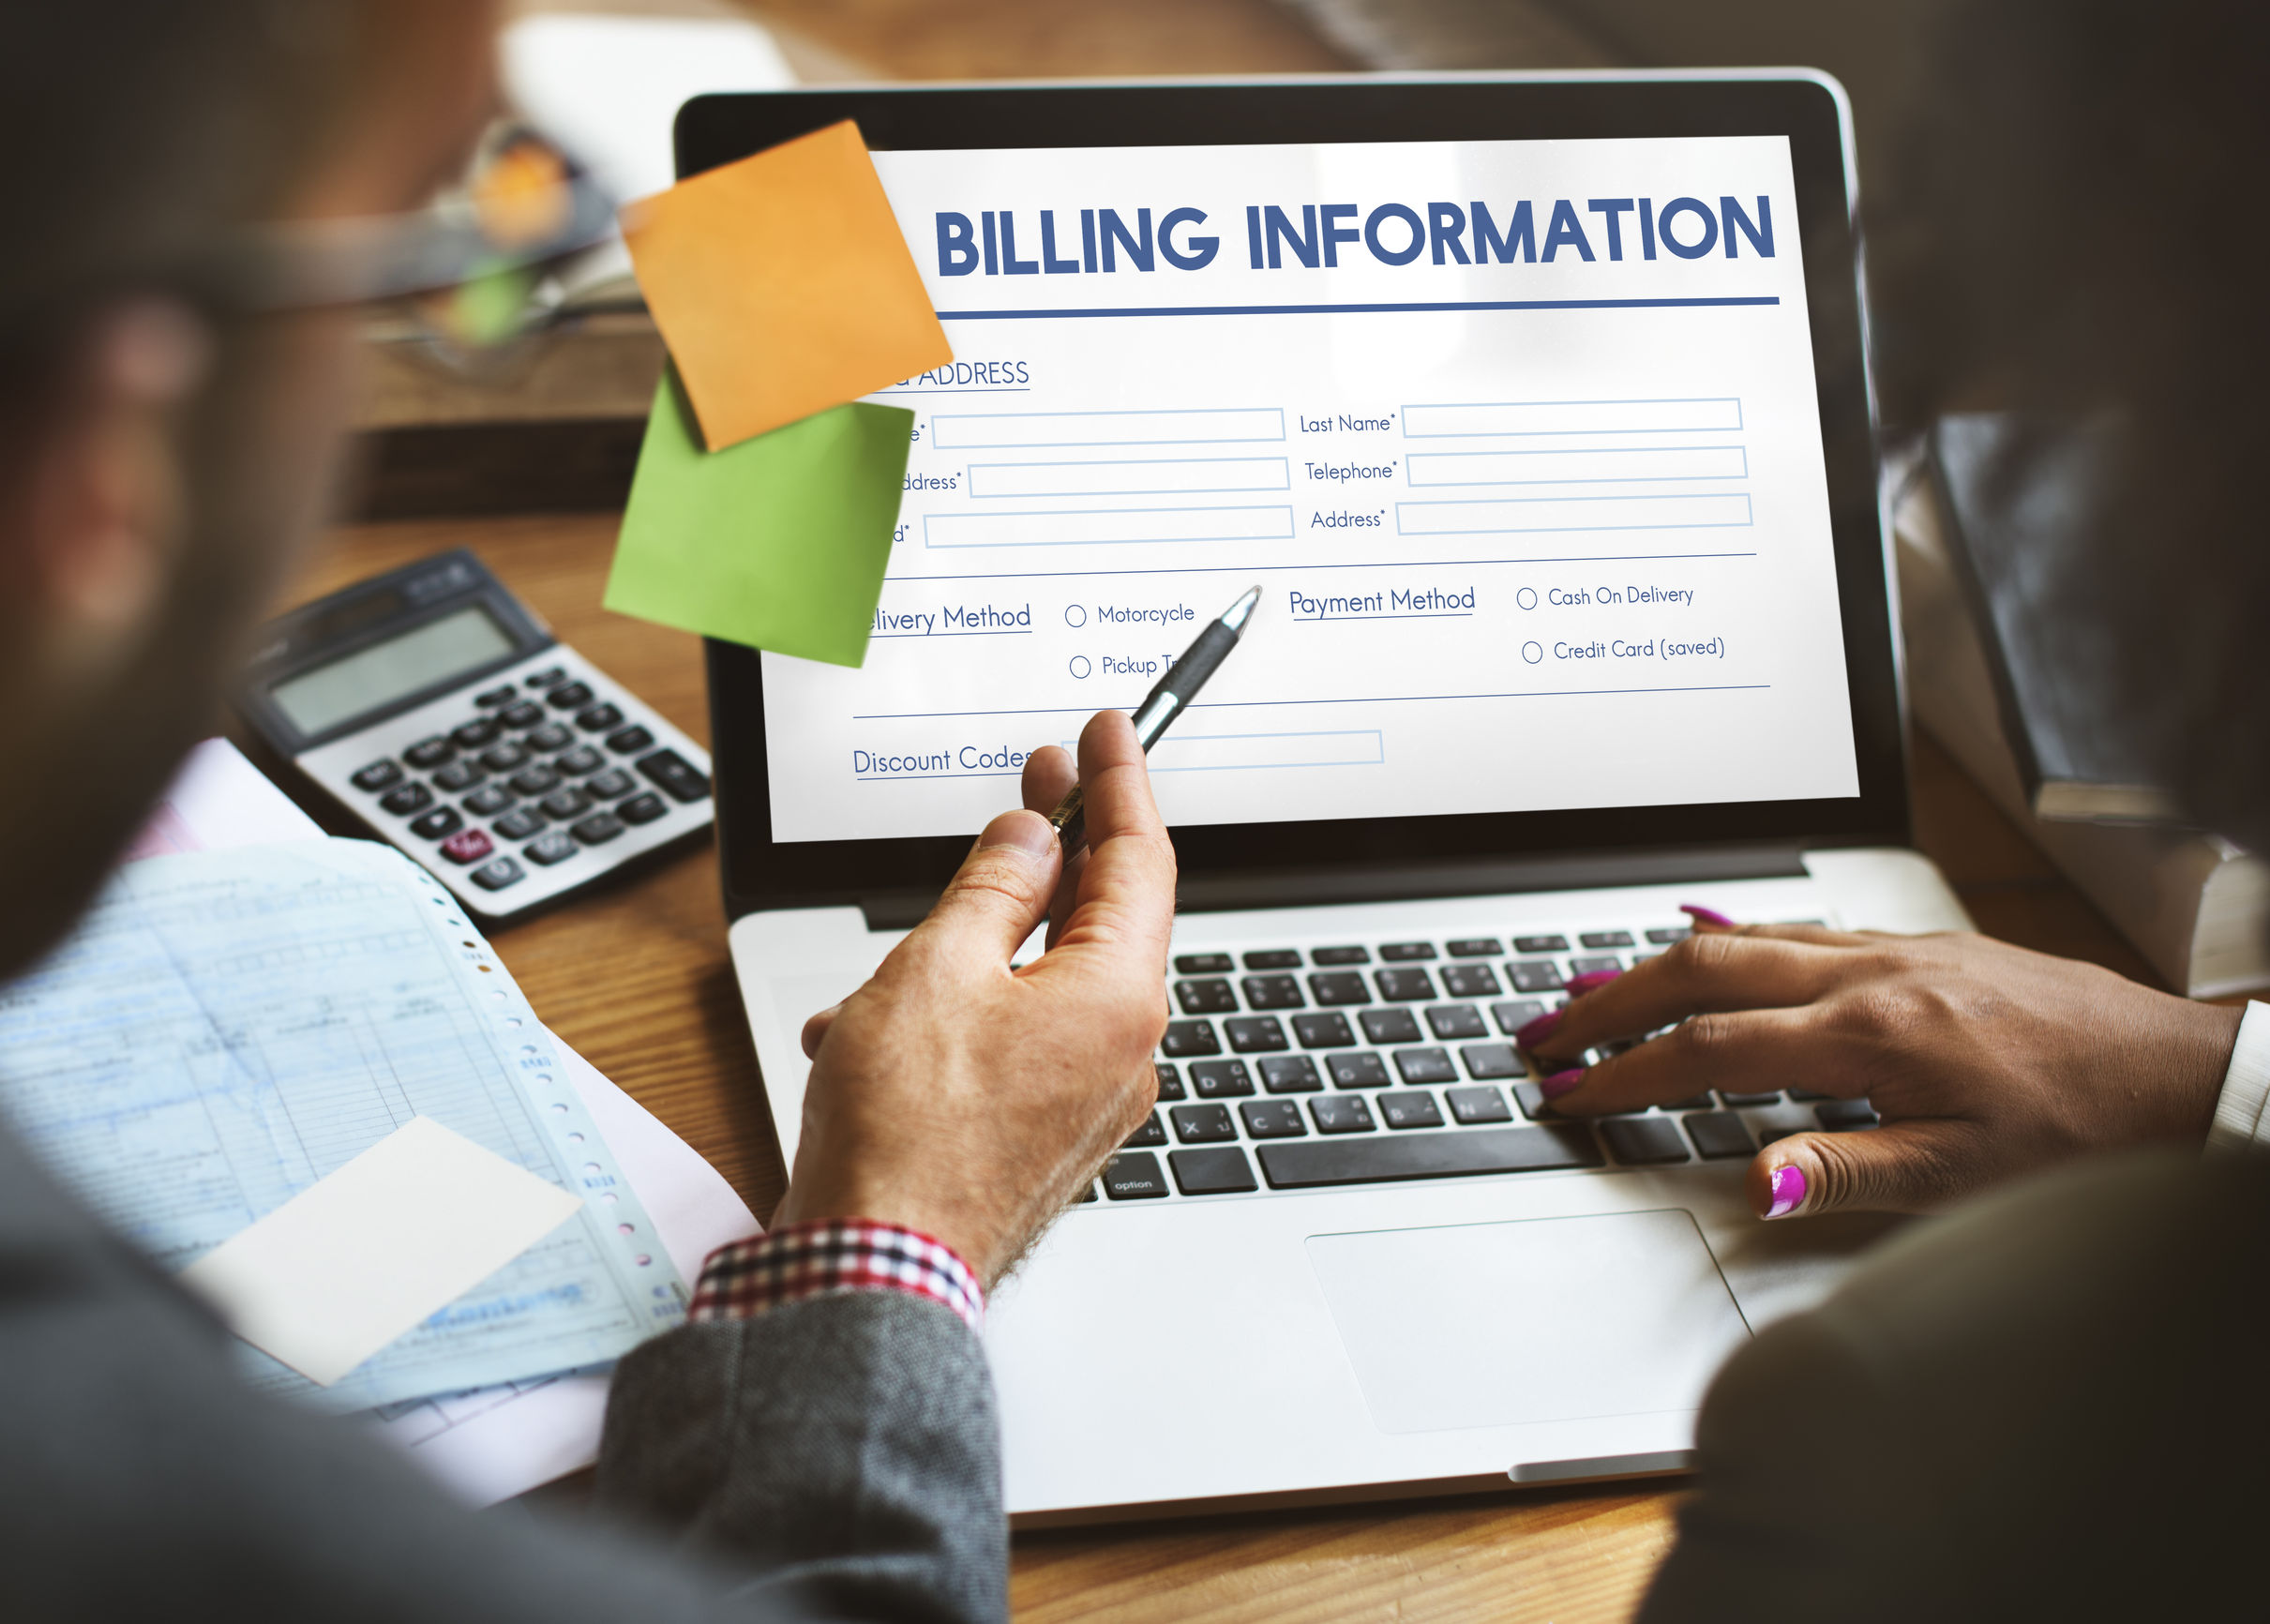 Why should customers have to pay for paper billing?